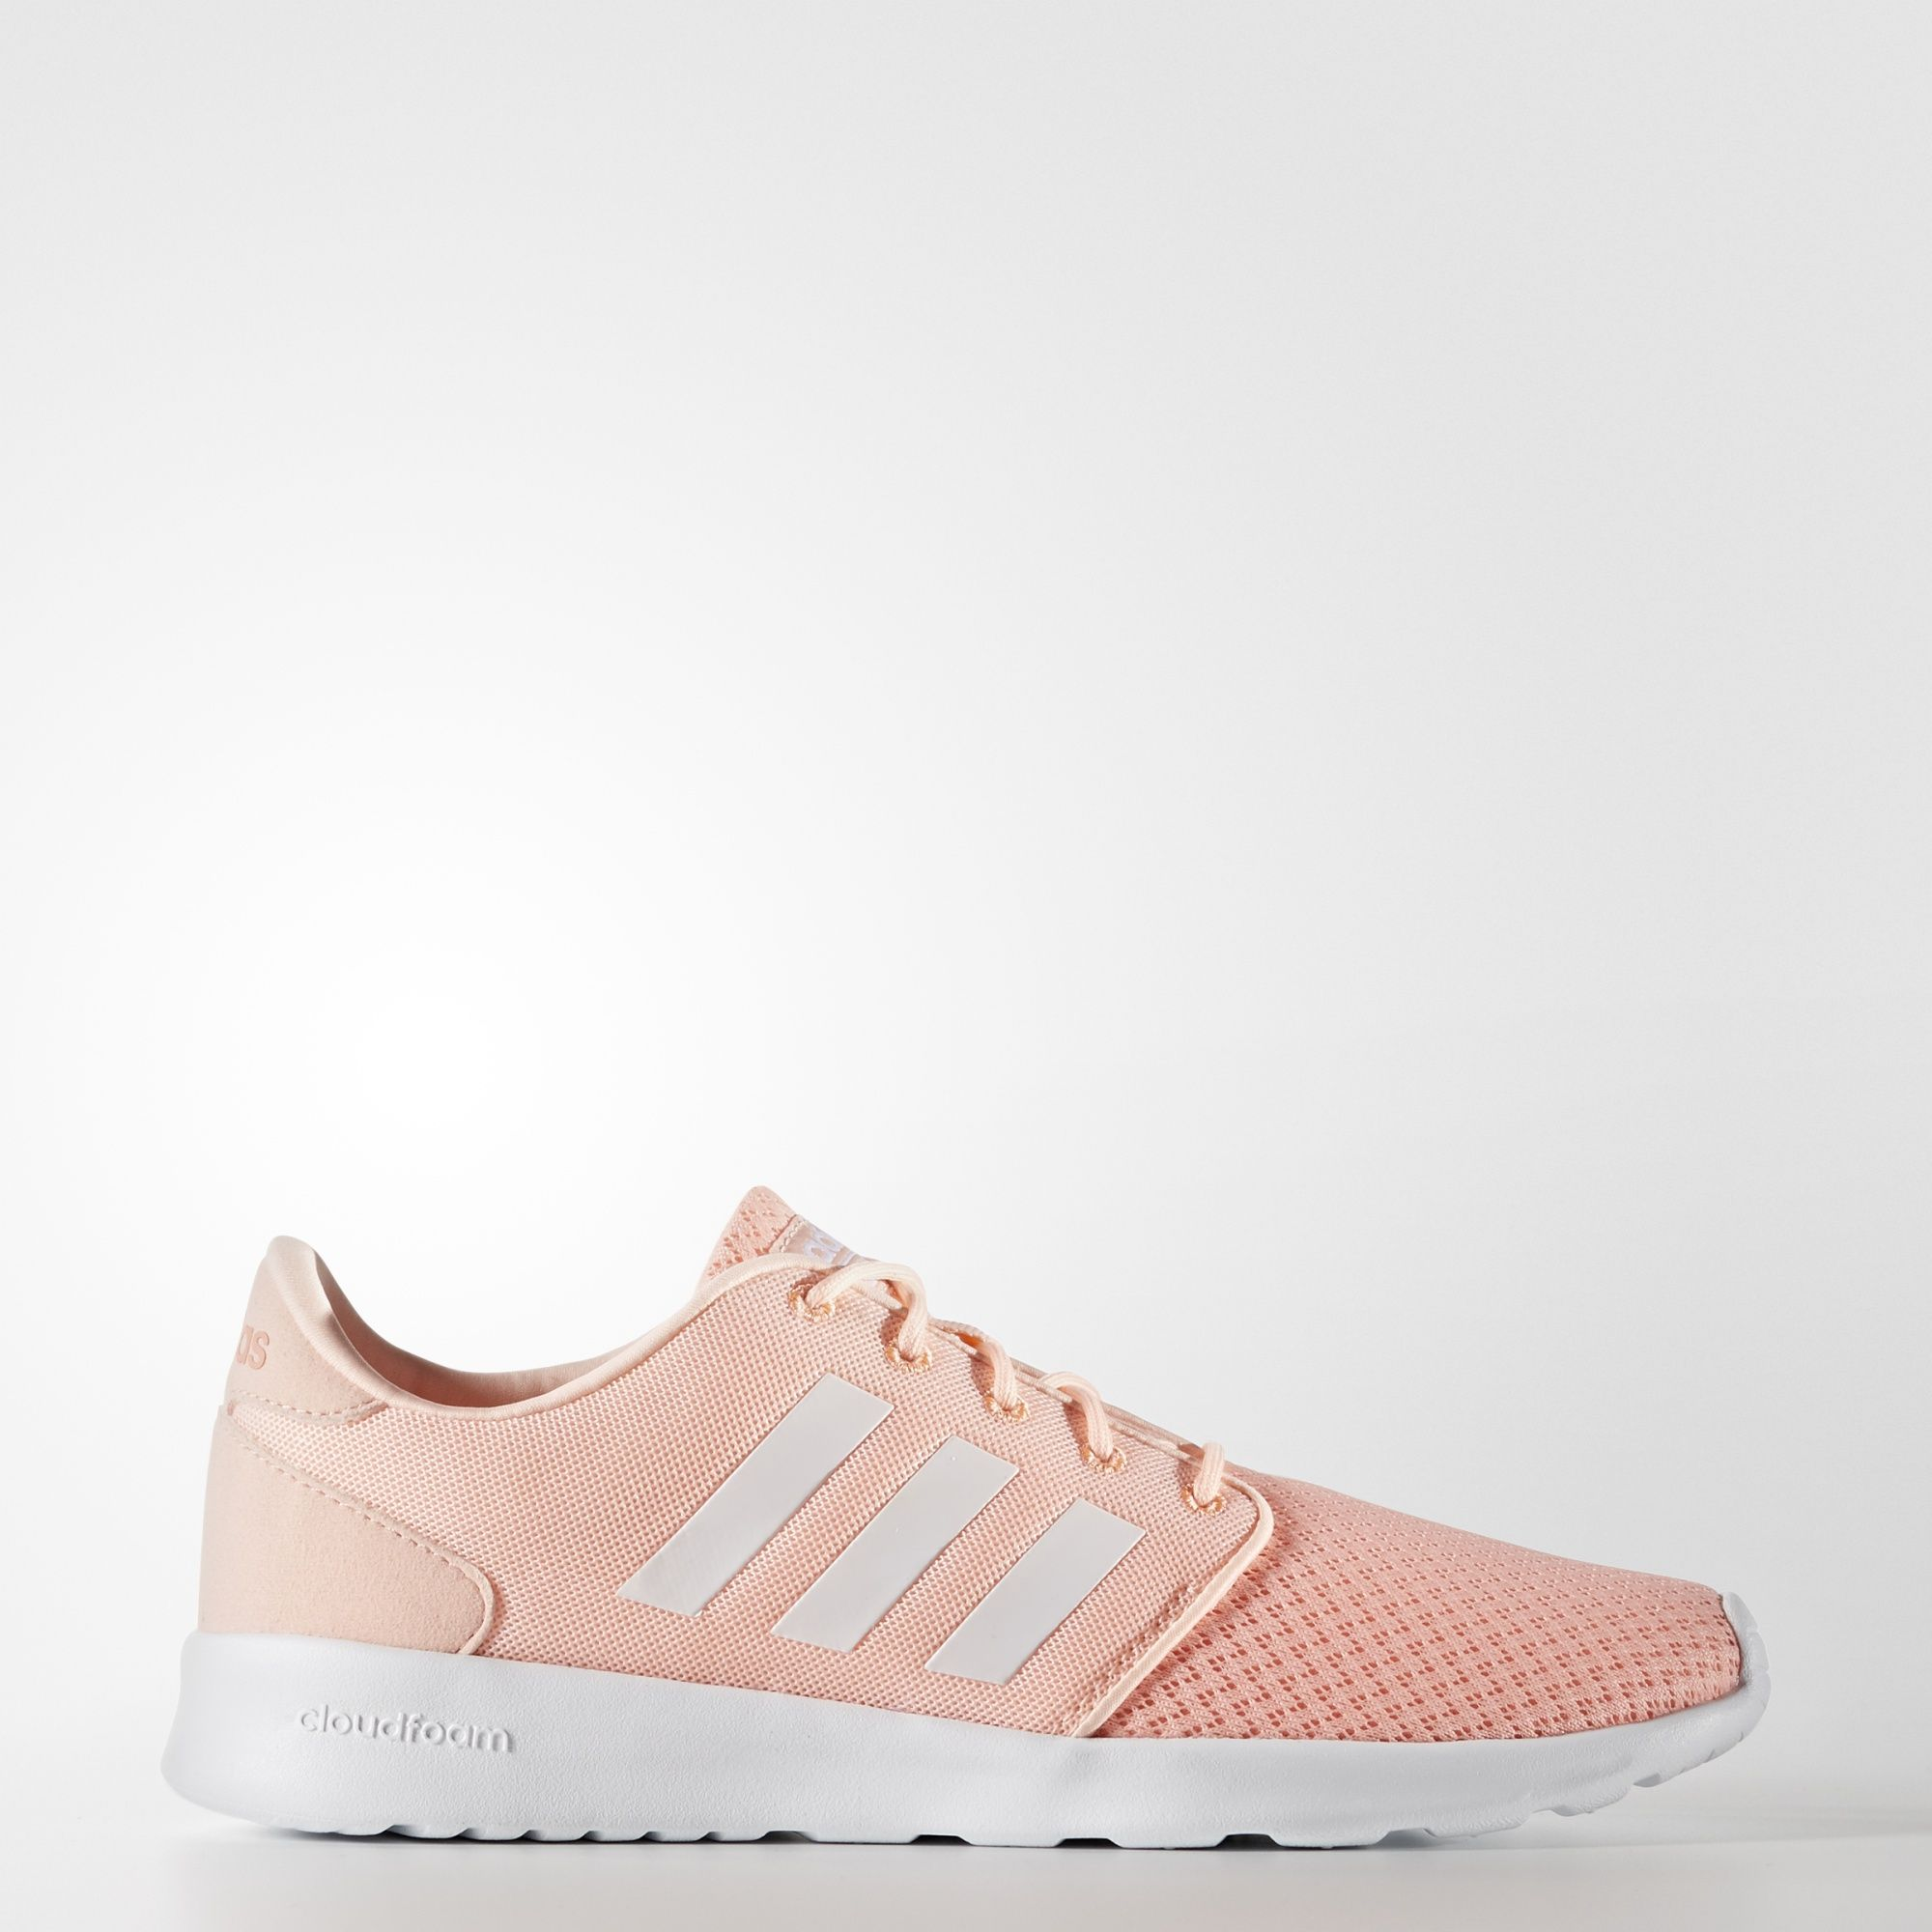 newest 8fab5 19308 ... low price cloudfoam shoes adidas us. rose adidasblack adidasomg  shoespink 341ff 92281